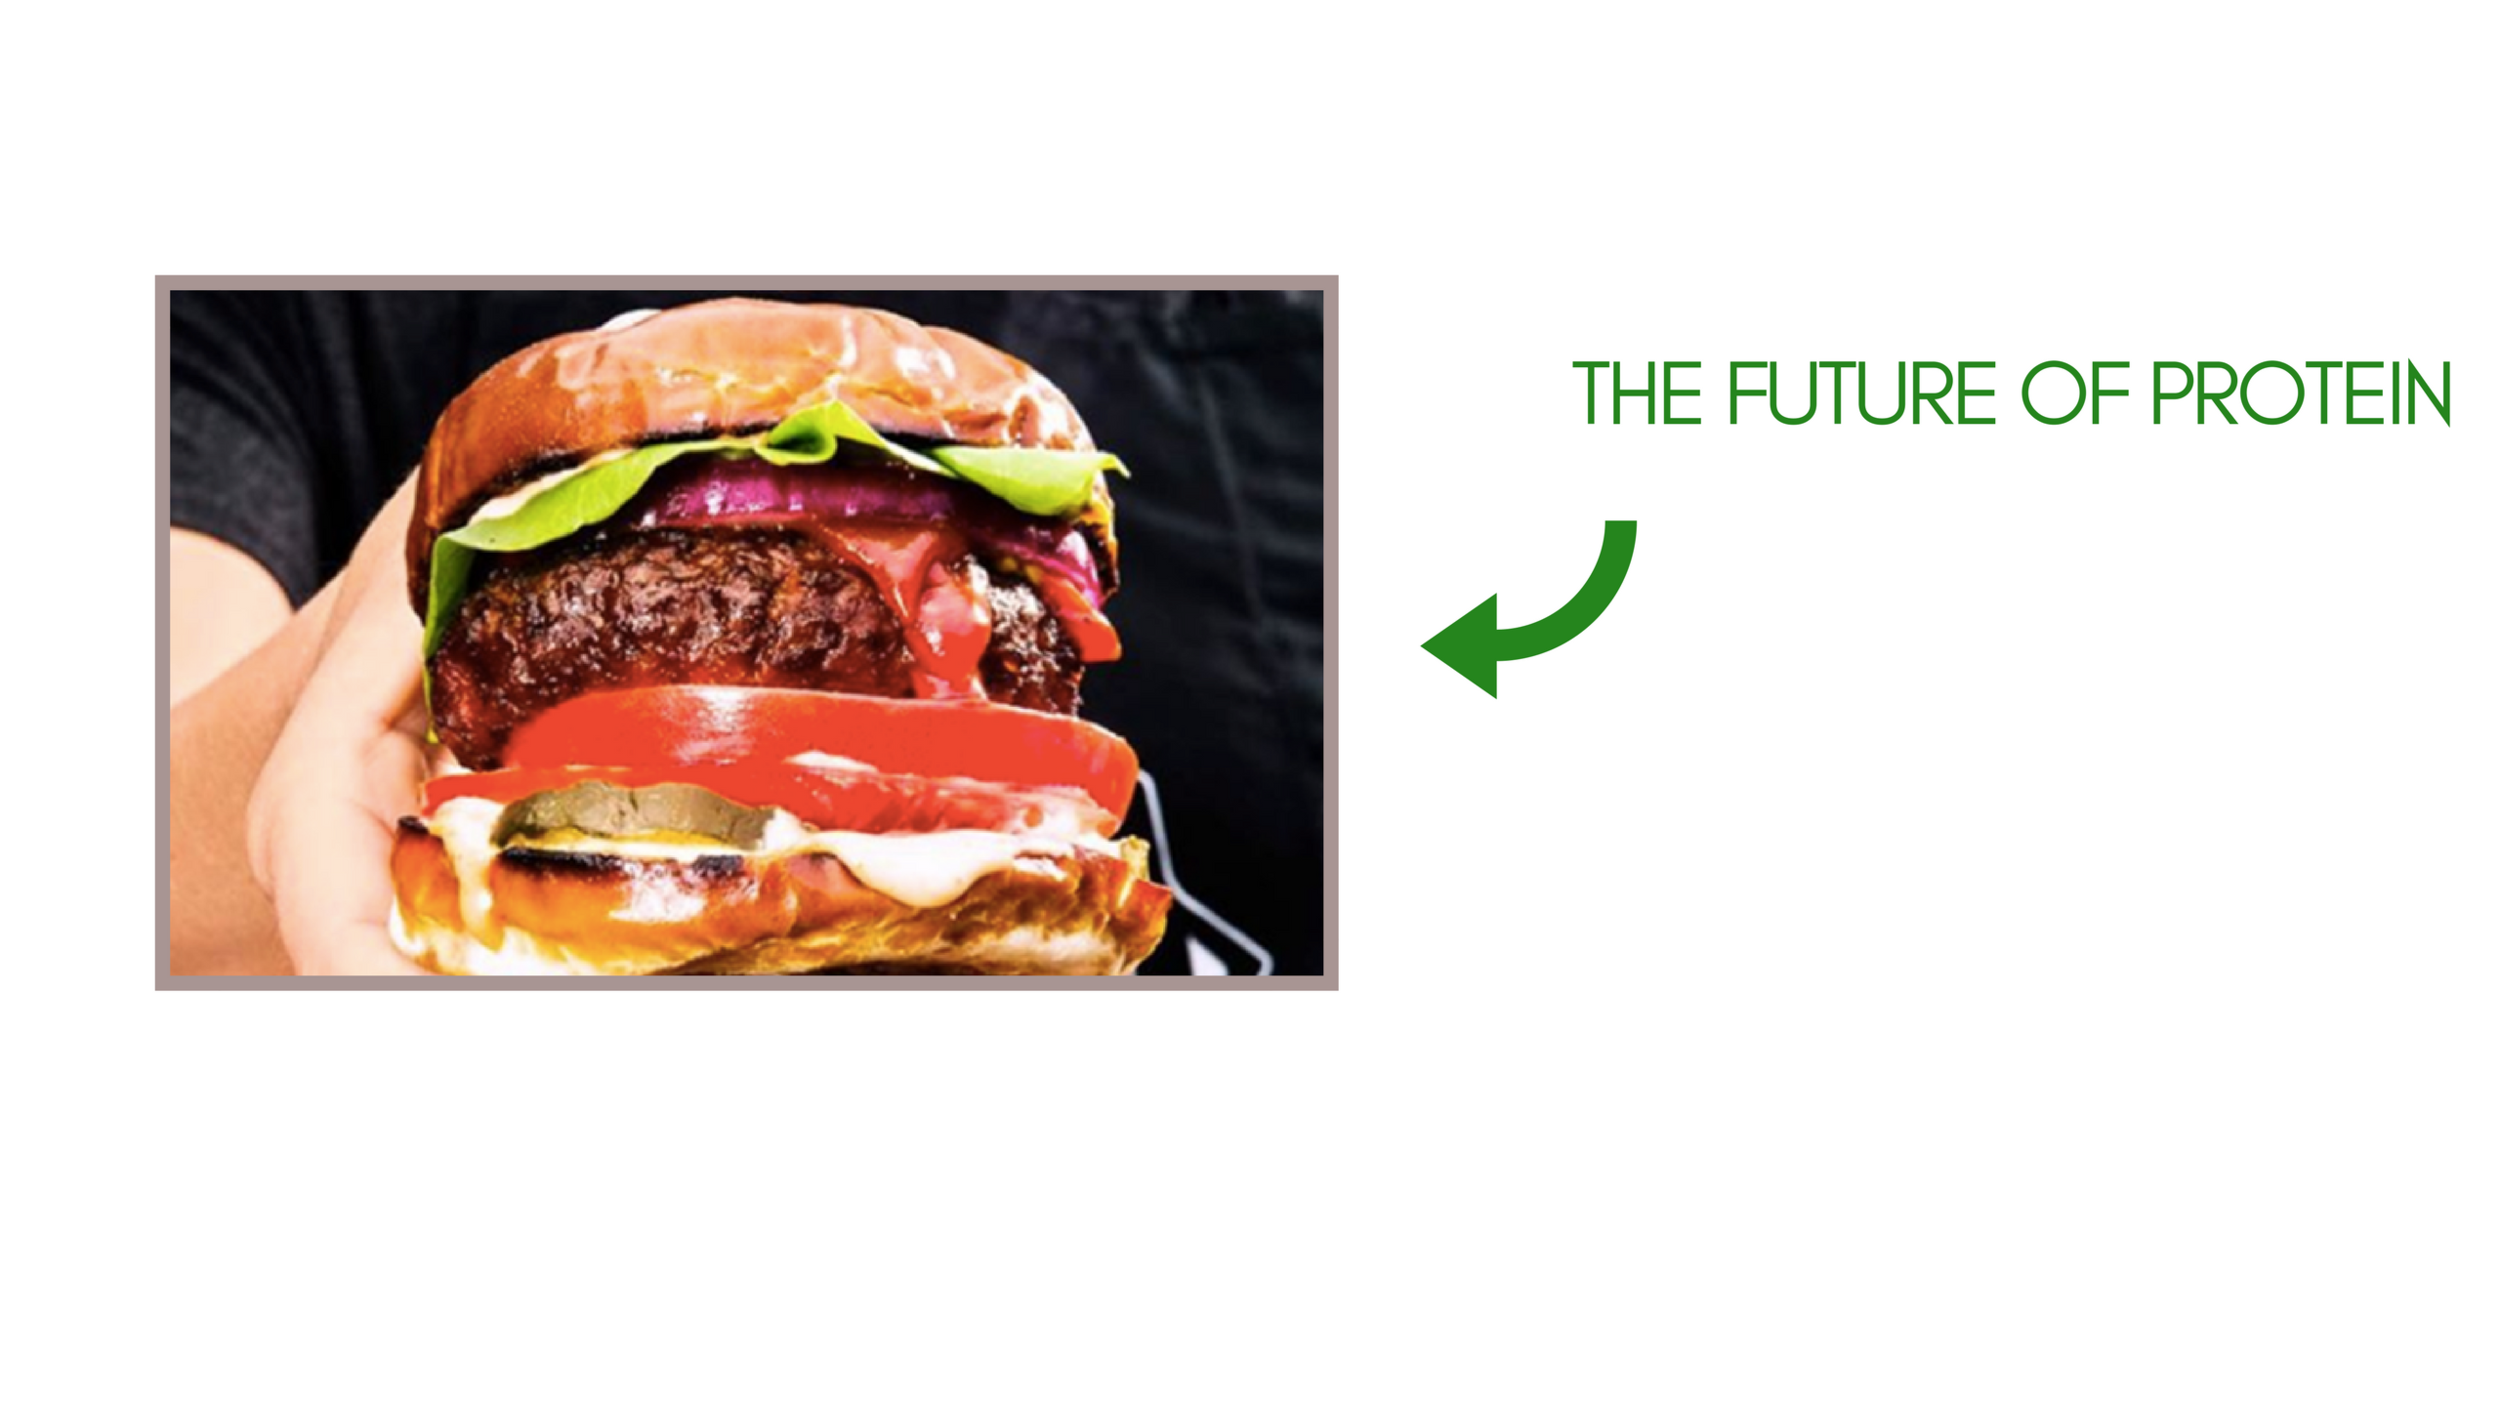 The Beyond Burger® by Beyond Meat®